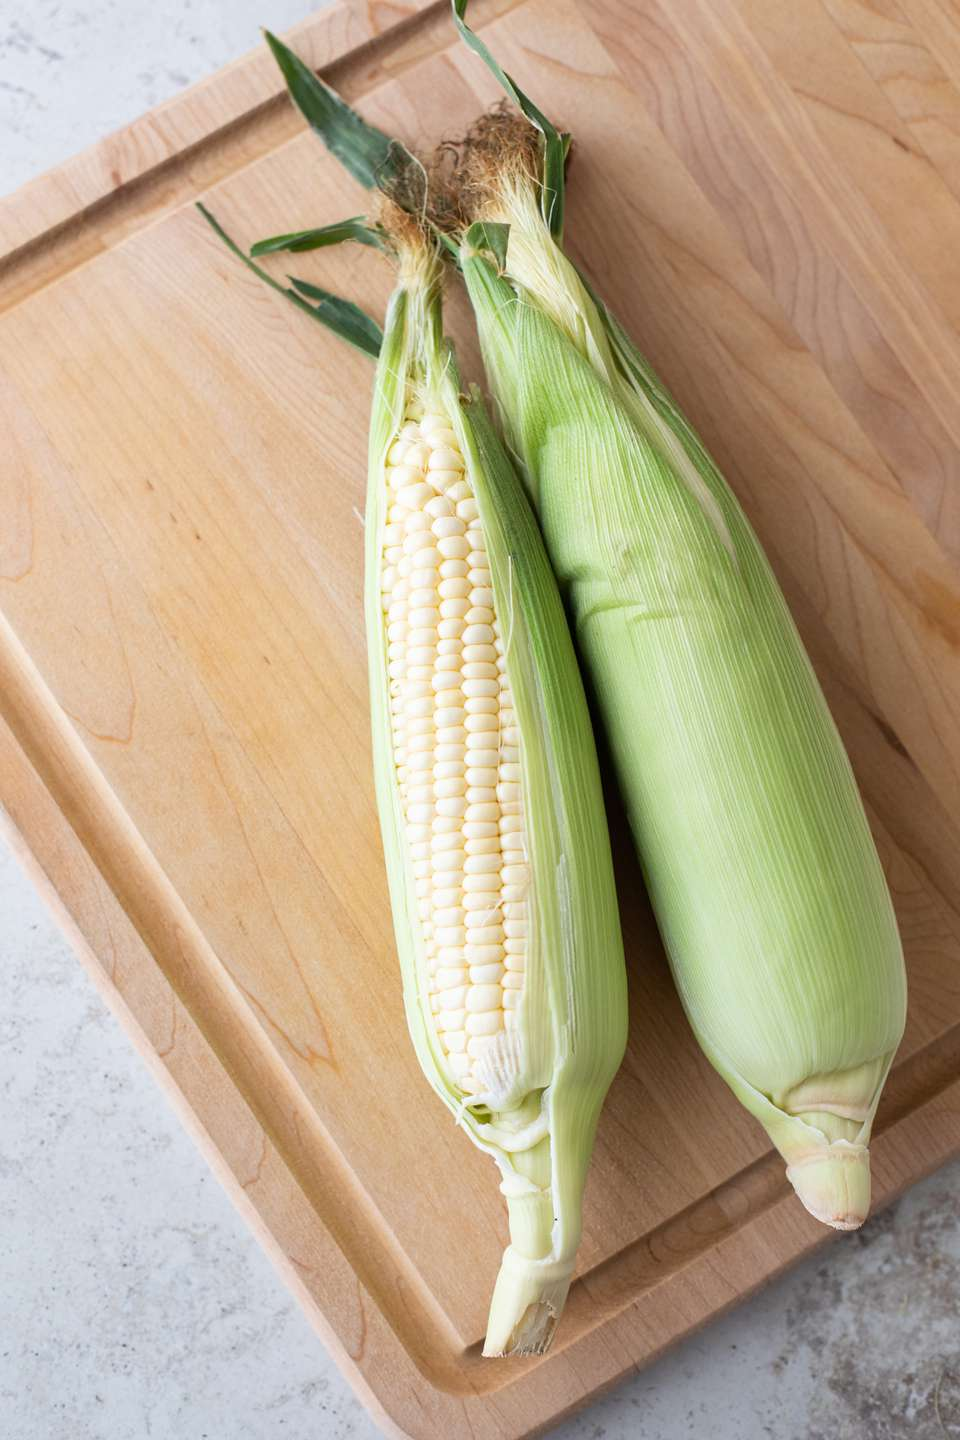 Two ears of corn on a wooden cutting board